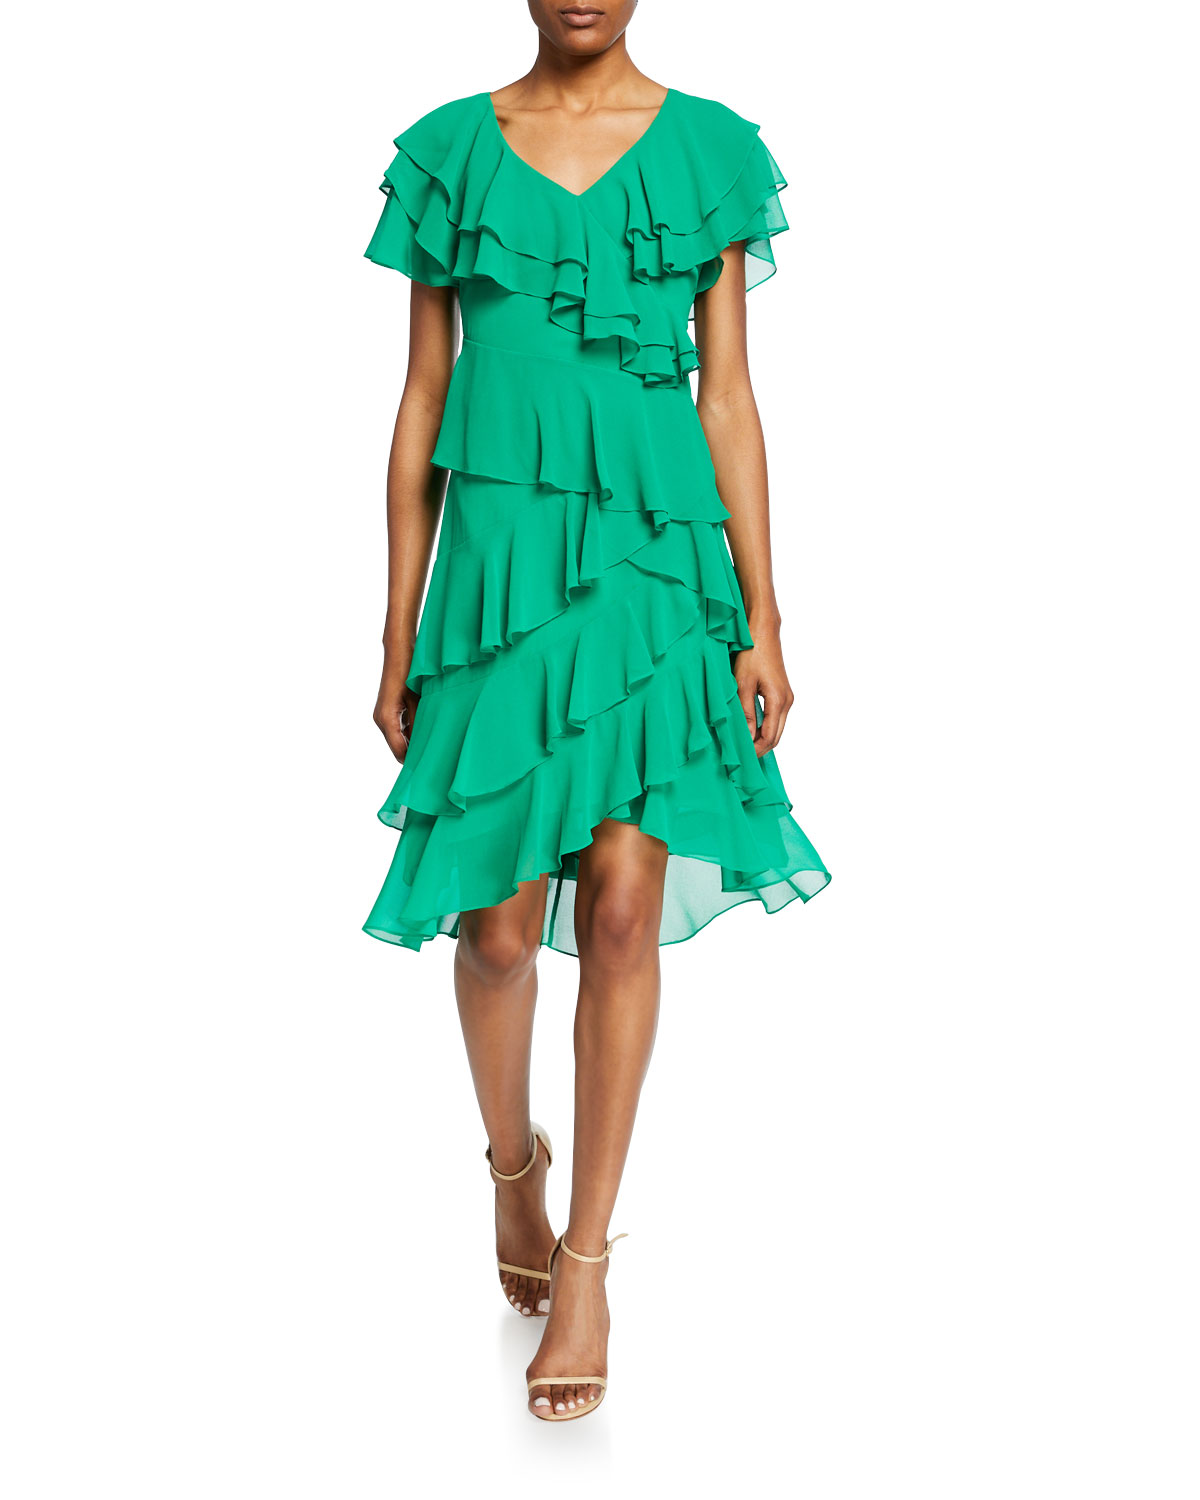 Badgley Mischka Dresses CATTIVA V-NECK SHORT-SLEEVE HIGH-LOW TIERED RUFFLE DRESS